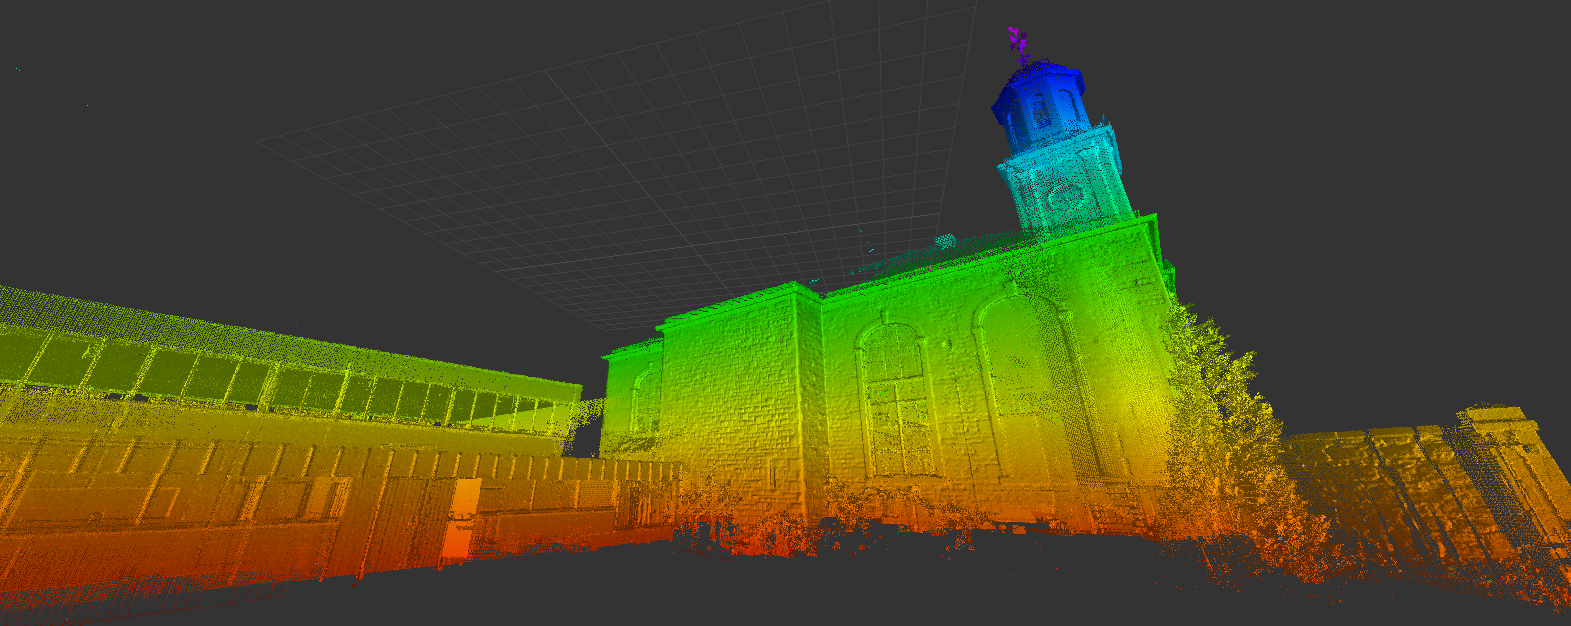 Cleaning the model of the ground points, our team could easily produce elevation drawings and sections. Each drawing was produced from the point cloud data and images recorded by the scanner.